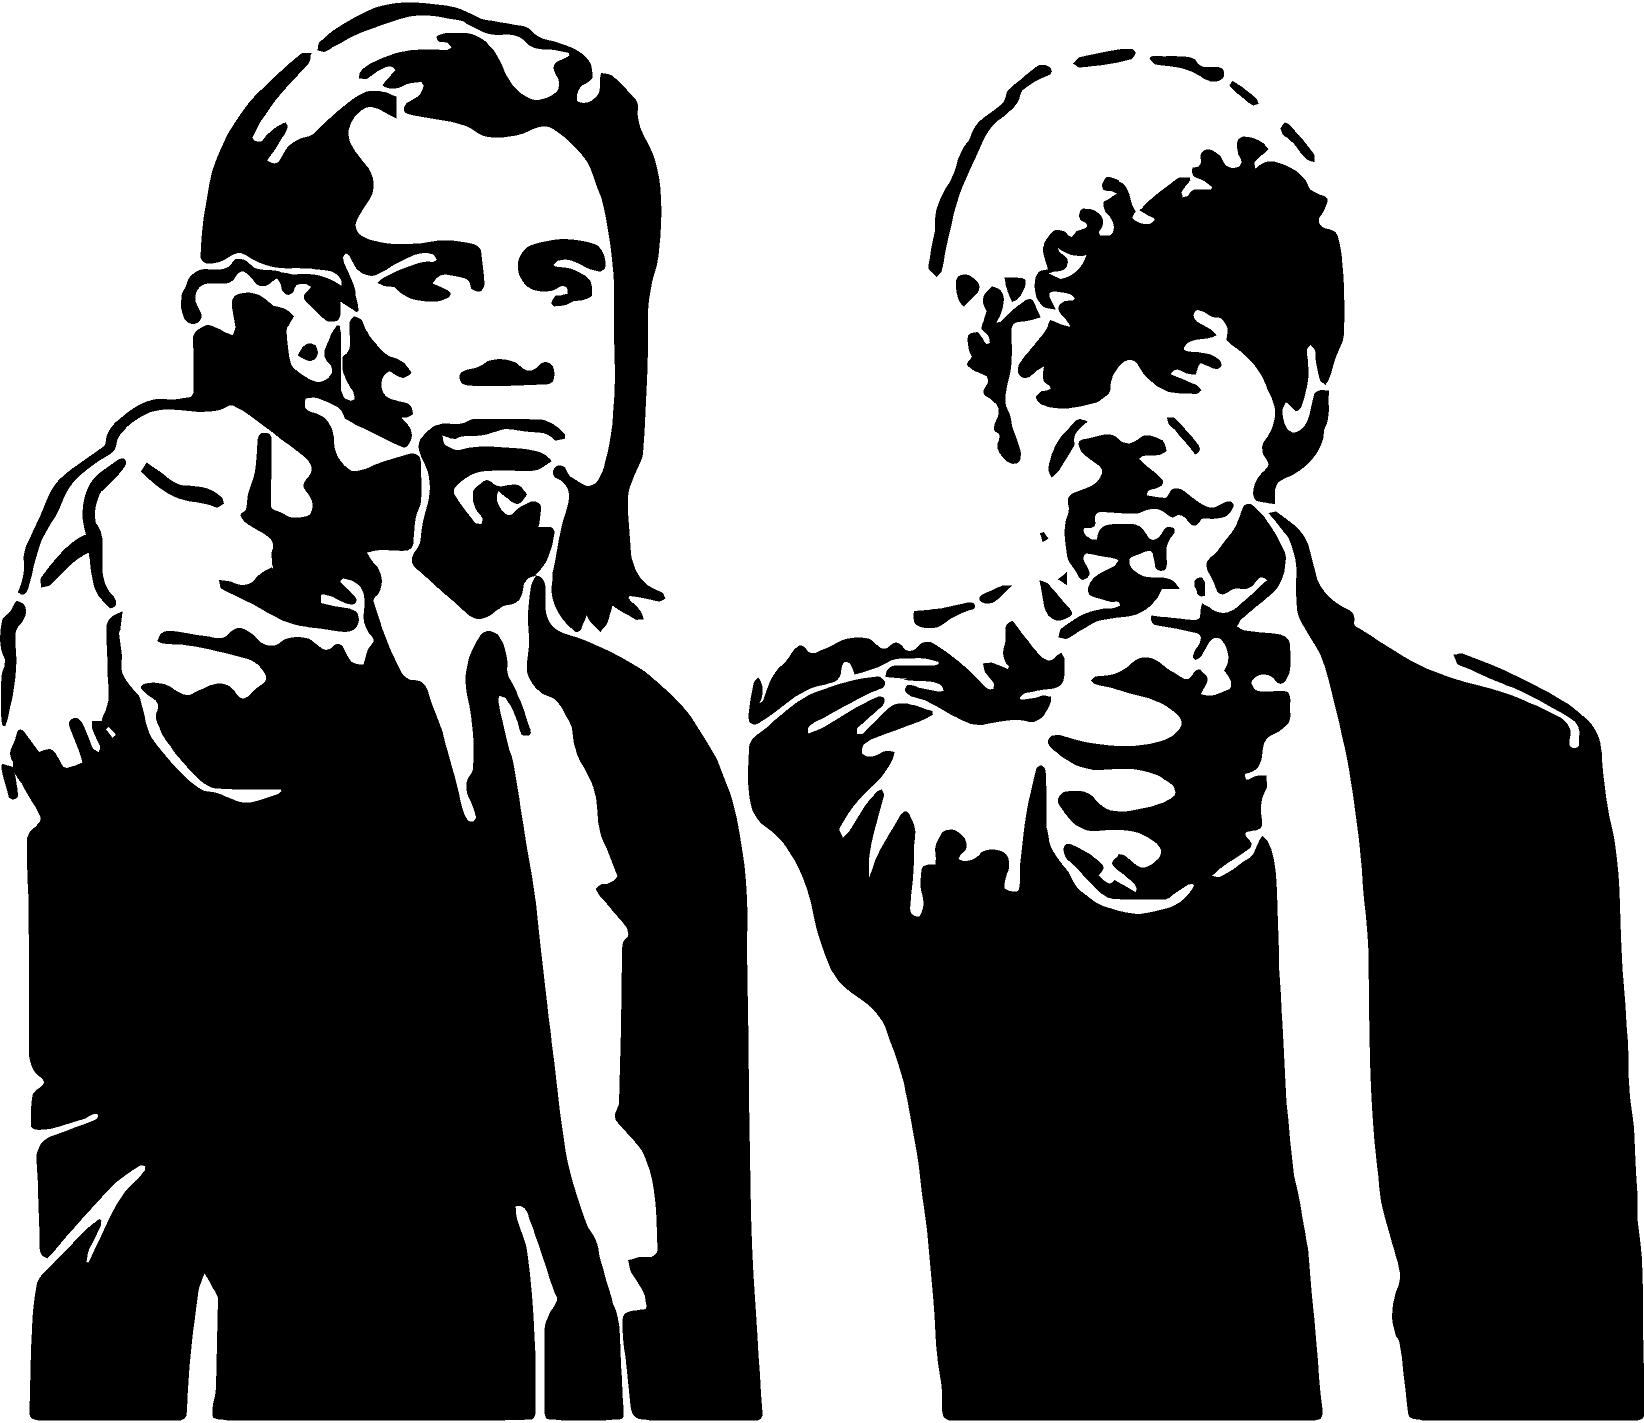 Iconic Pulp Fiction Silhouette Size 60cm X 50cm GBP1149 With Free UK PP From Wearewallart